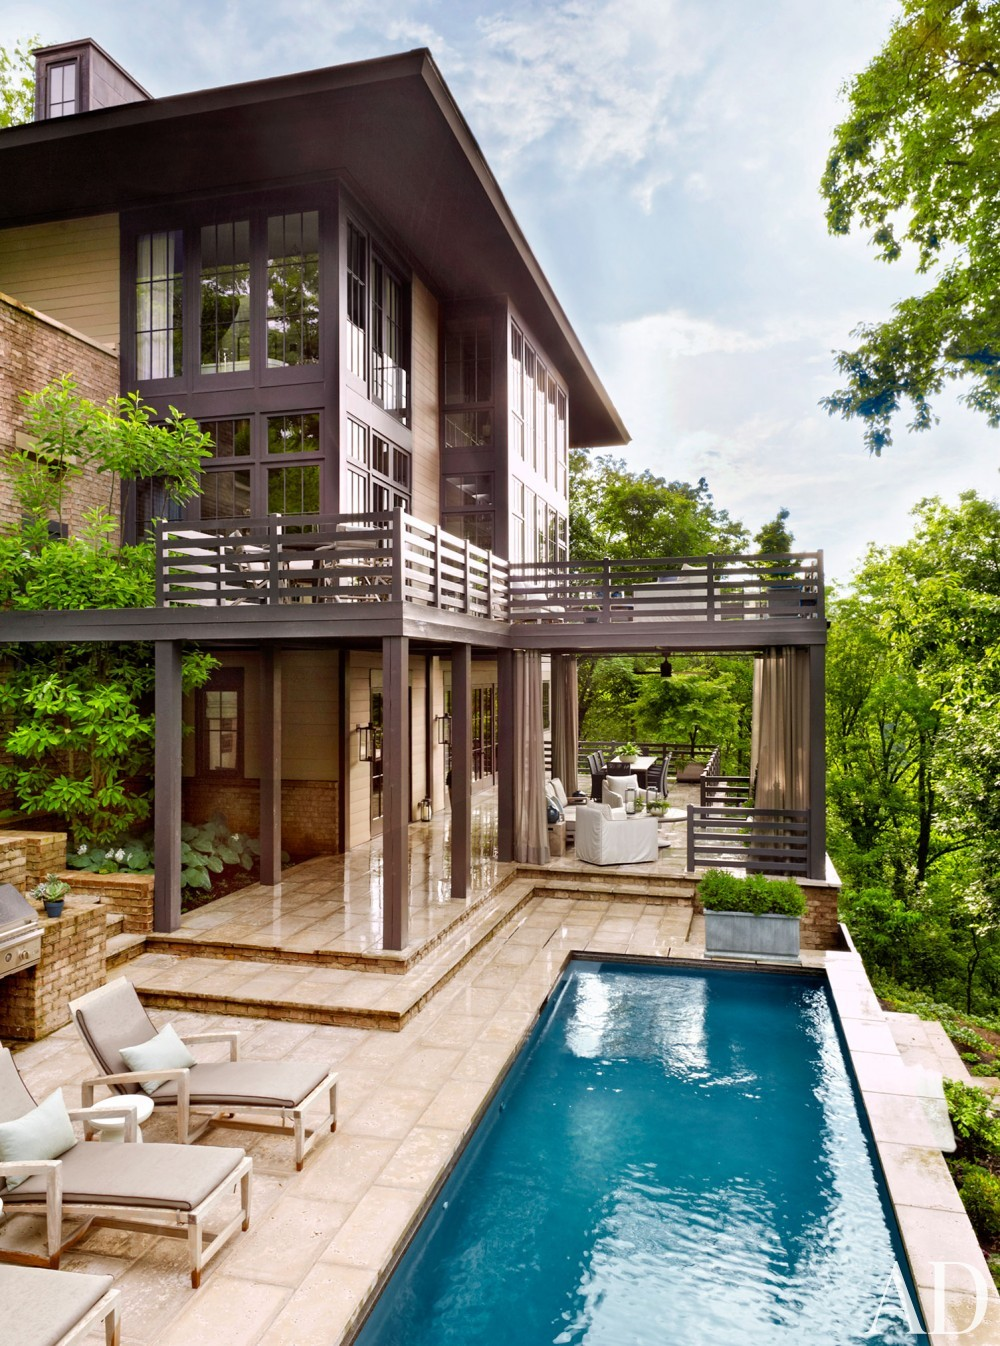 Modern Pool by Ray Booth in Nashville, TN